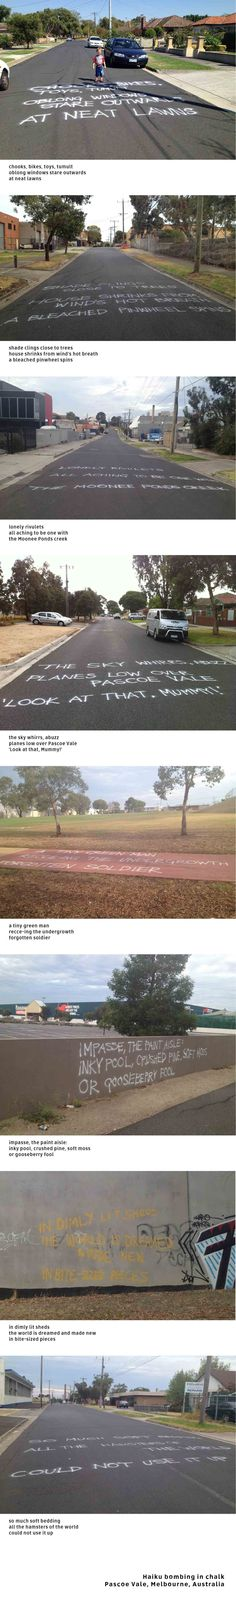 Haiku bombing in chalk, Pascoe Vale, Melbourne. To do your own, just pick a spot & haiku it up with spray-on chalk. #haikubombing